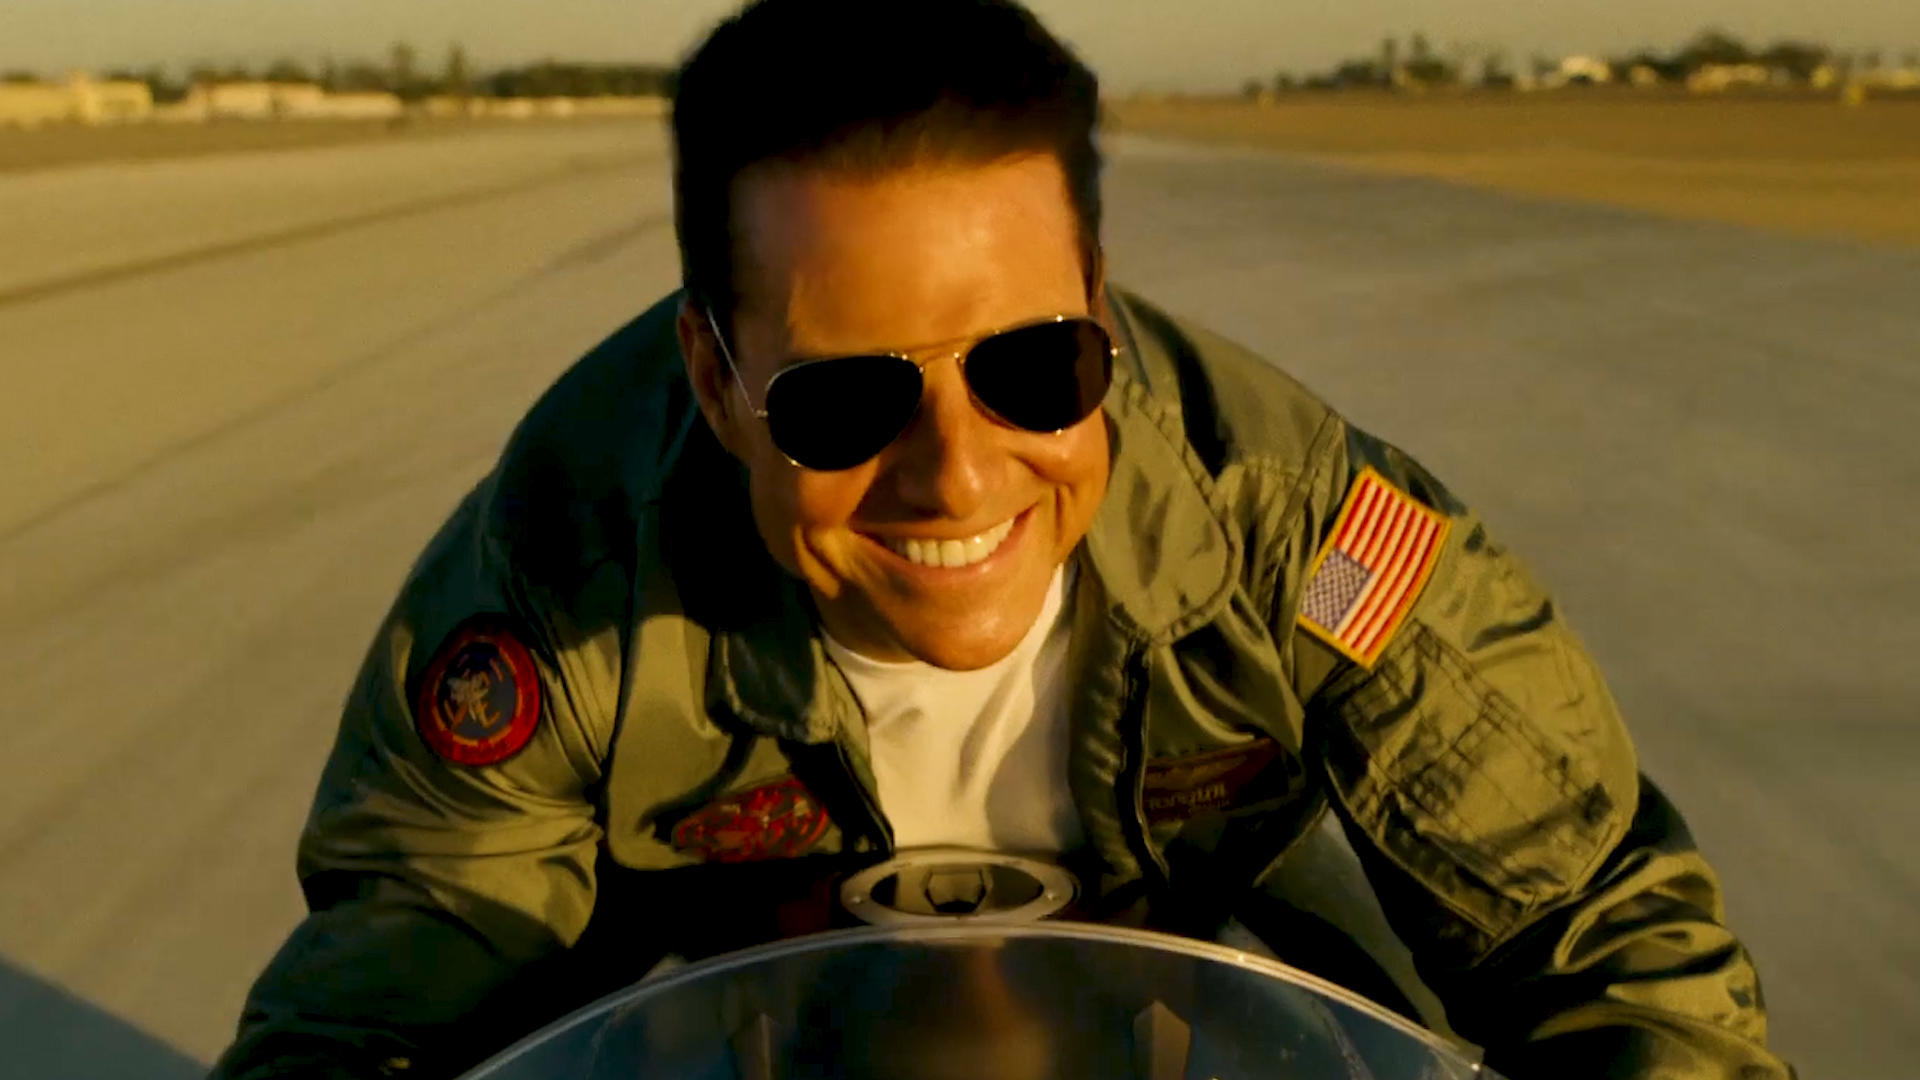 Video: Top Gun: Maverick trailer debuts at Comic-Con 2019